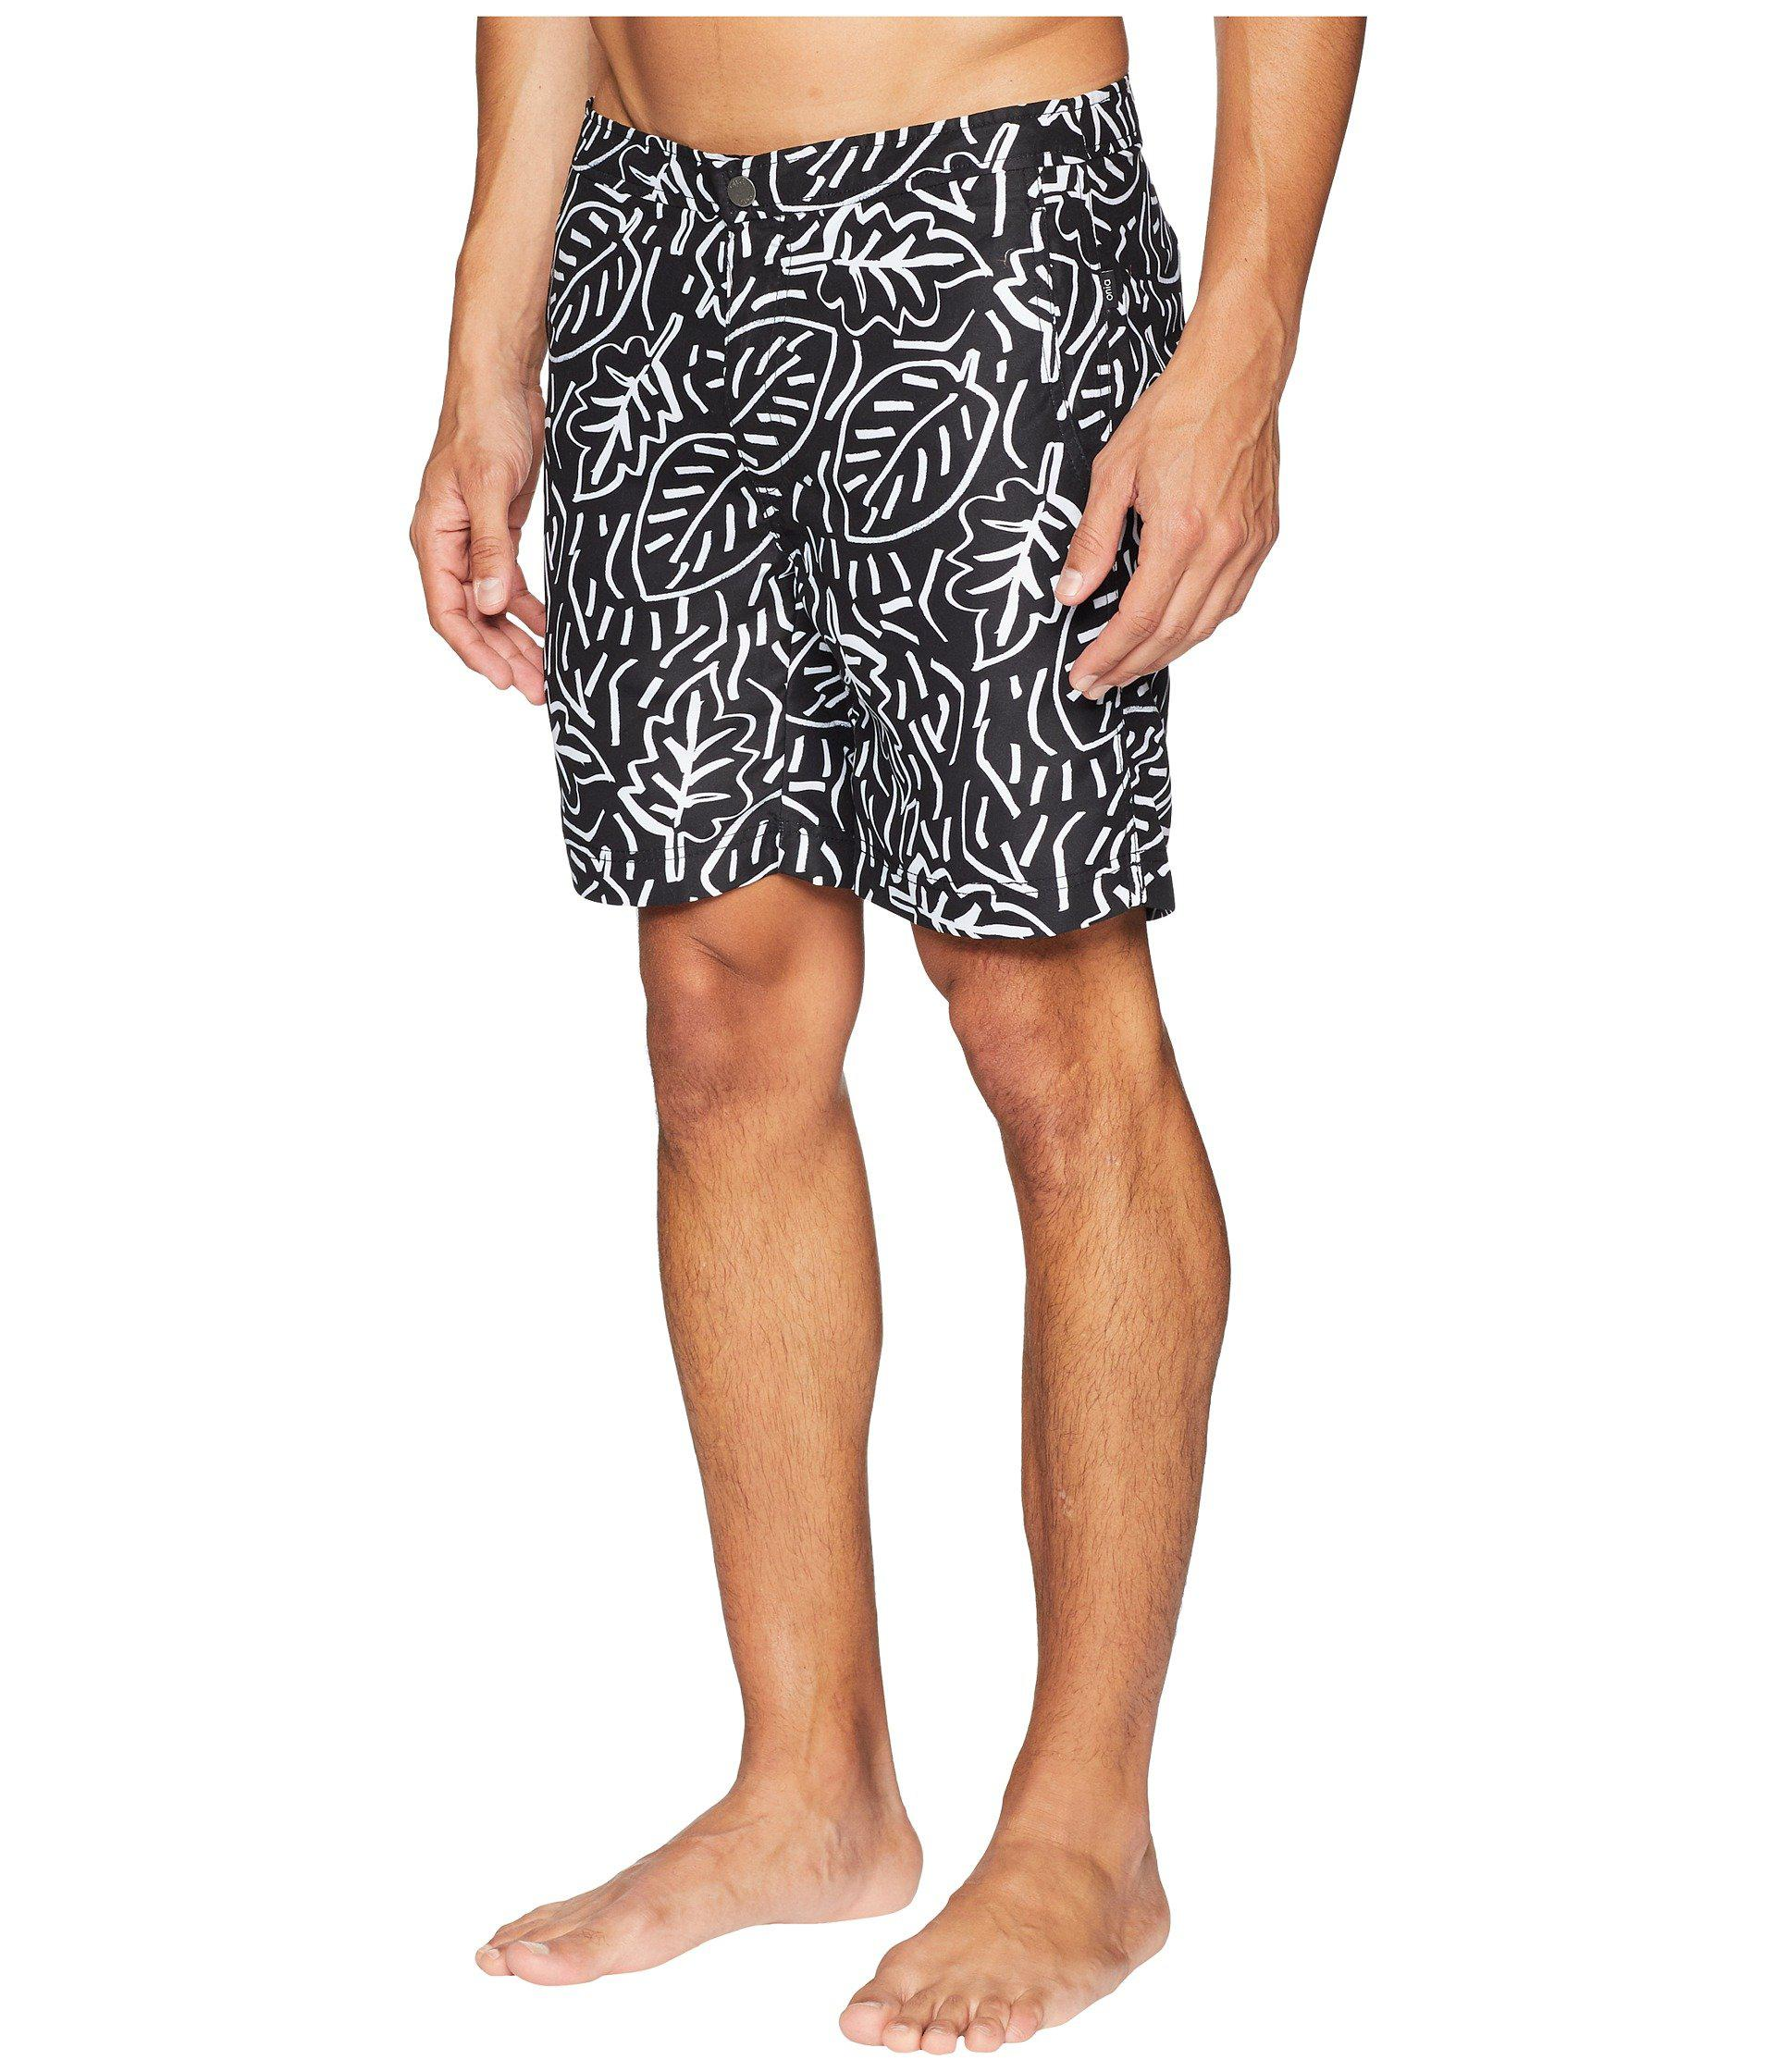 251a3d7cef Lyst - Onia Calder 10 Pop Leaves Swim Trunk in Black for Men - Save 50%